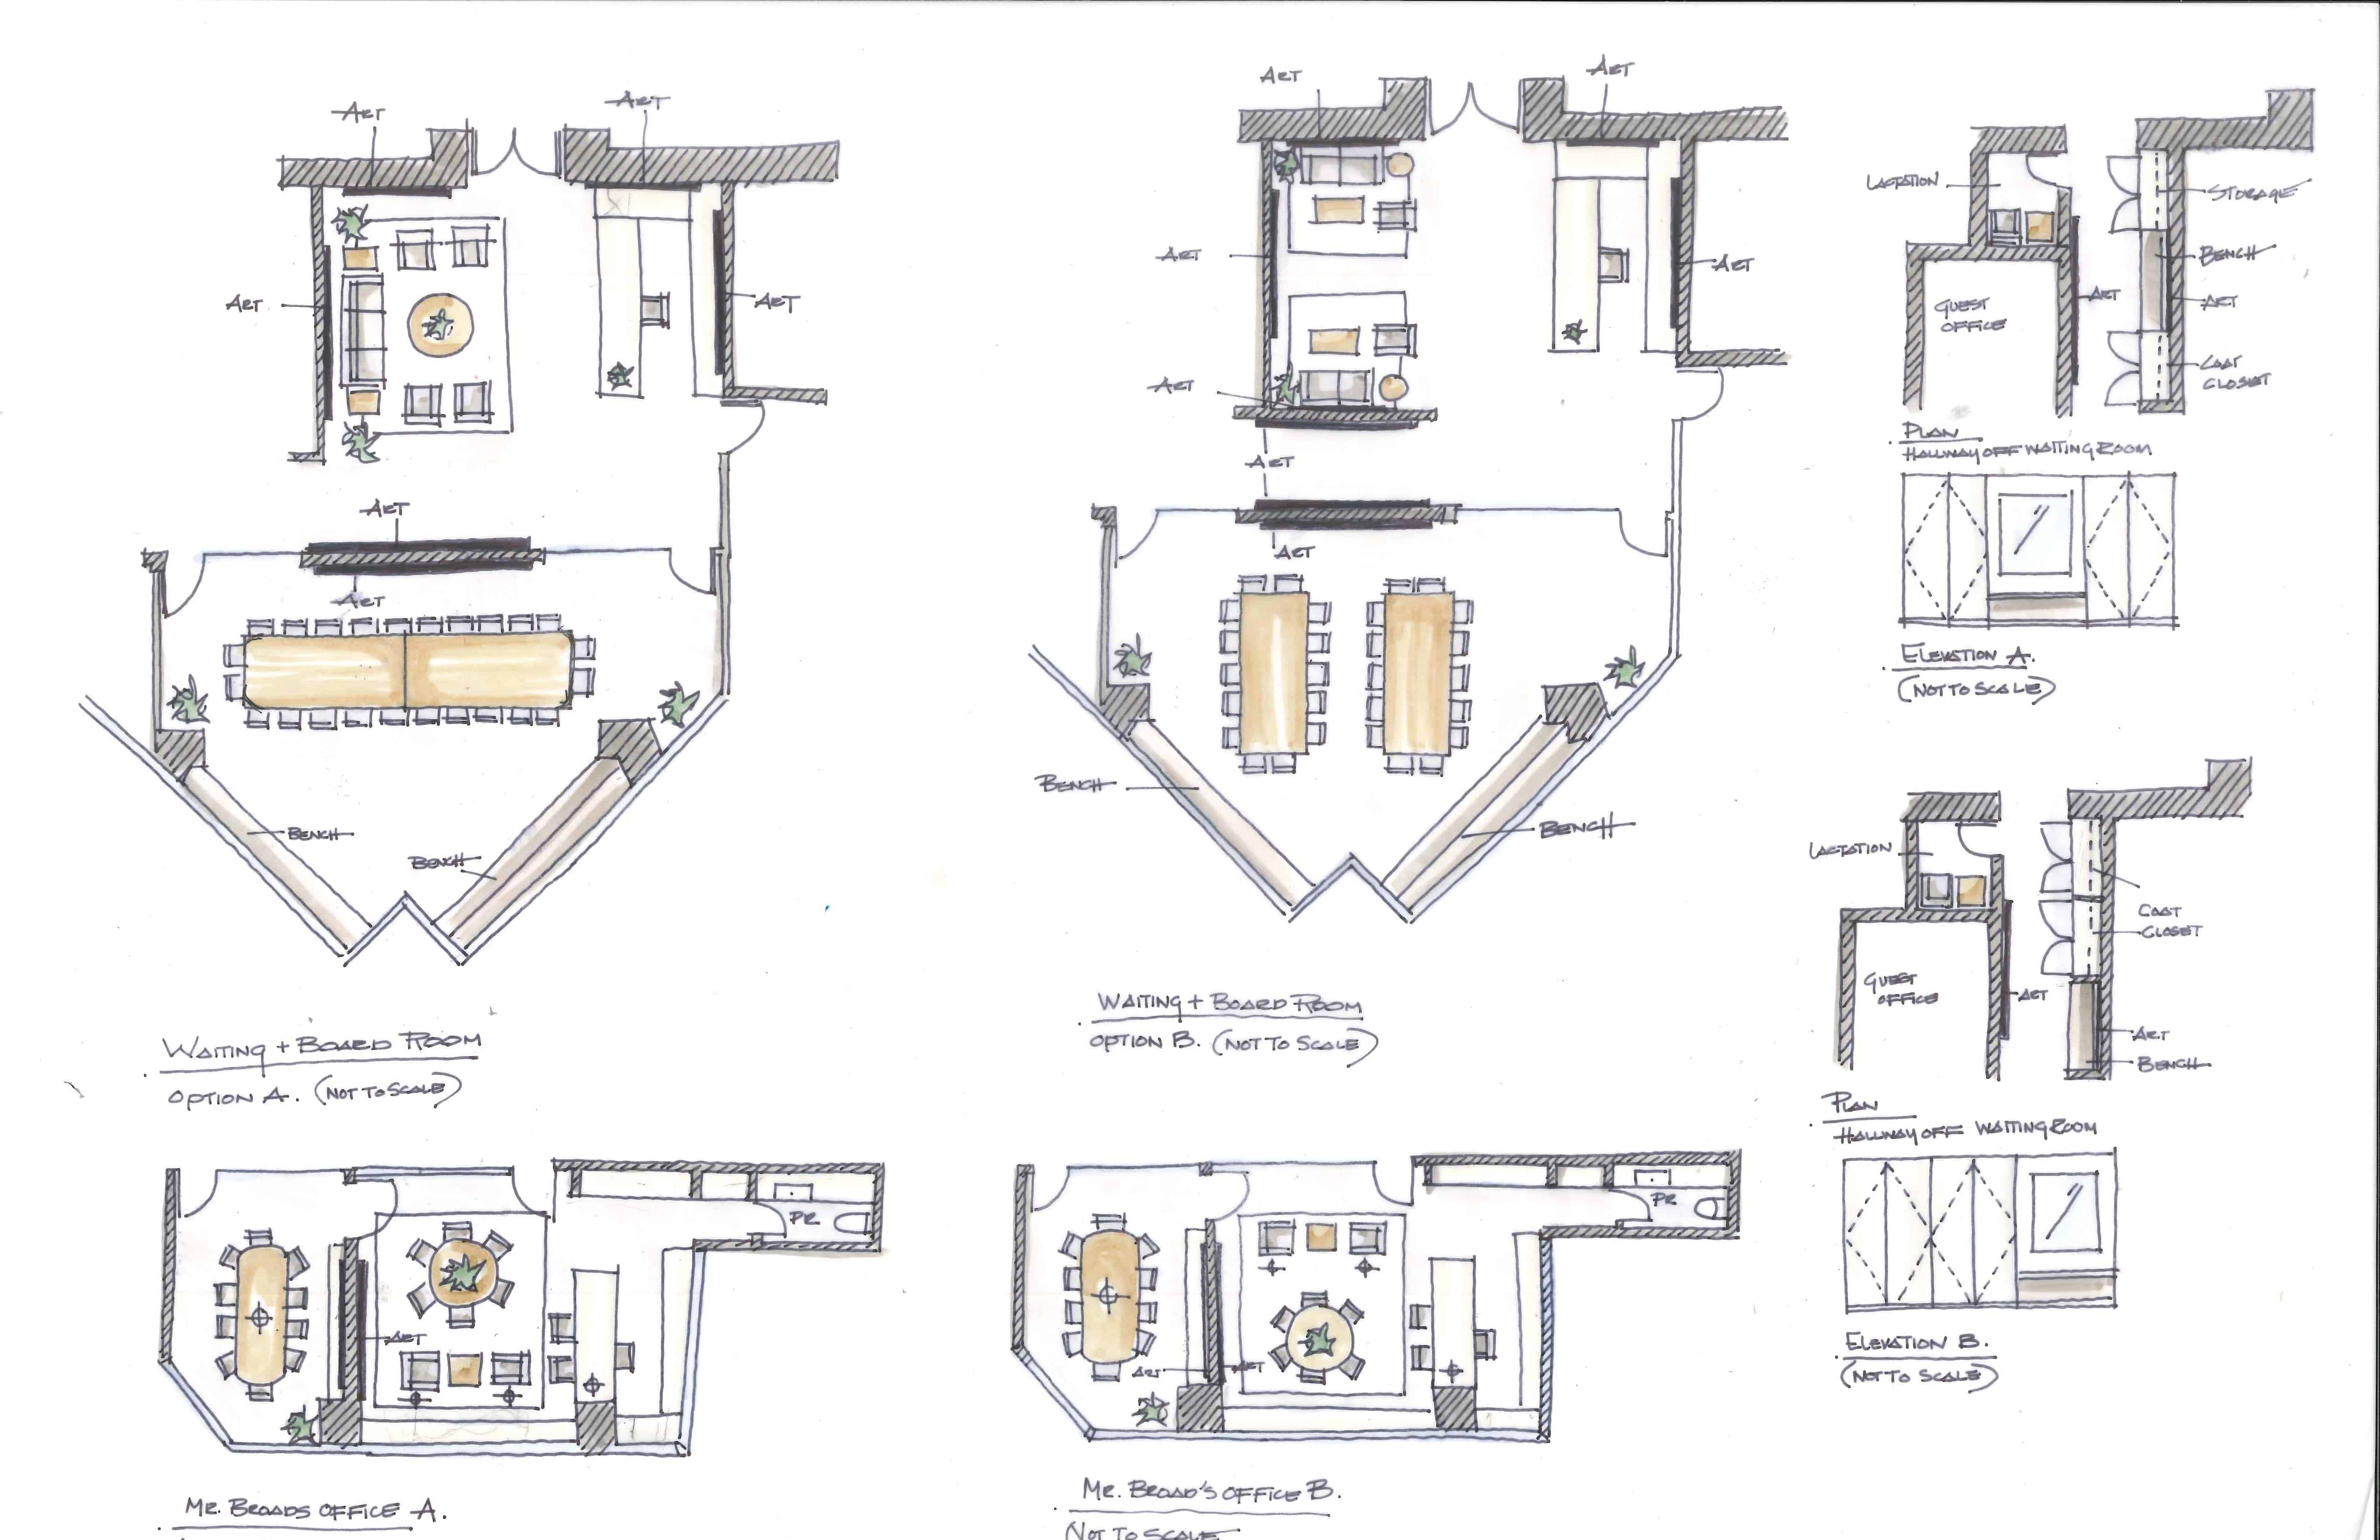 1348_Broad Foundation_Sketches from Interior Designer_Page_2